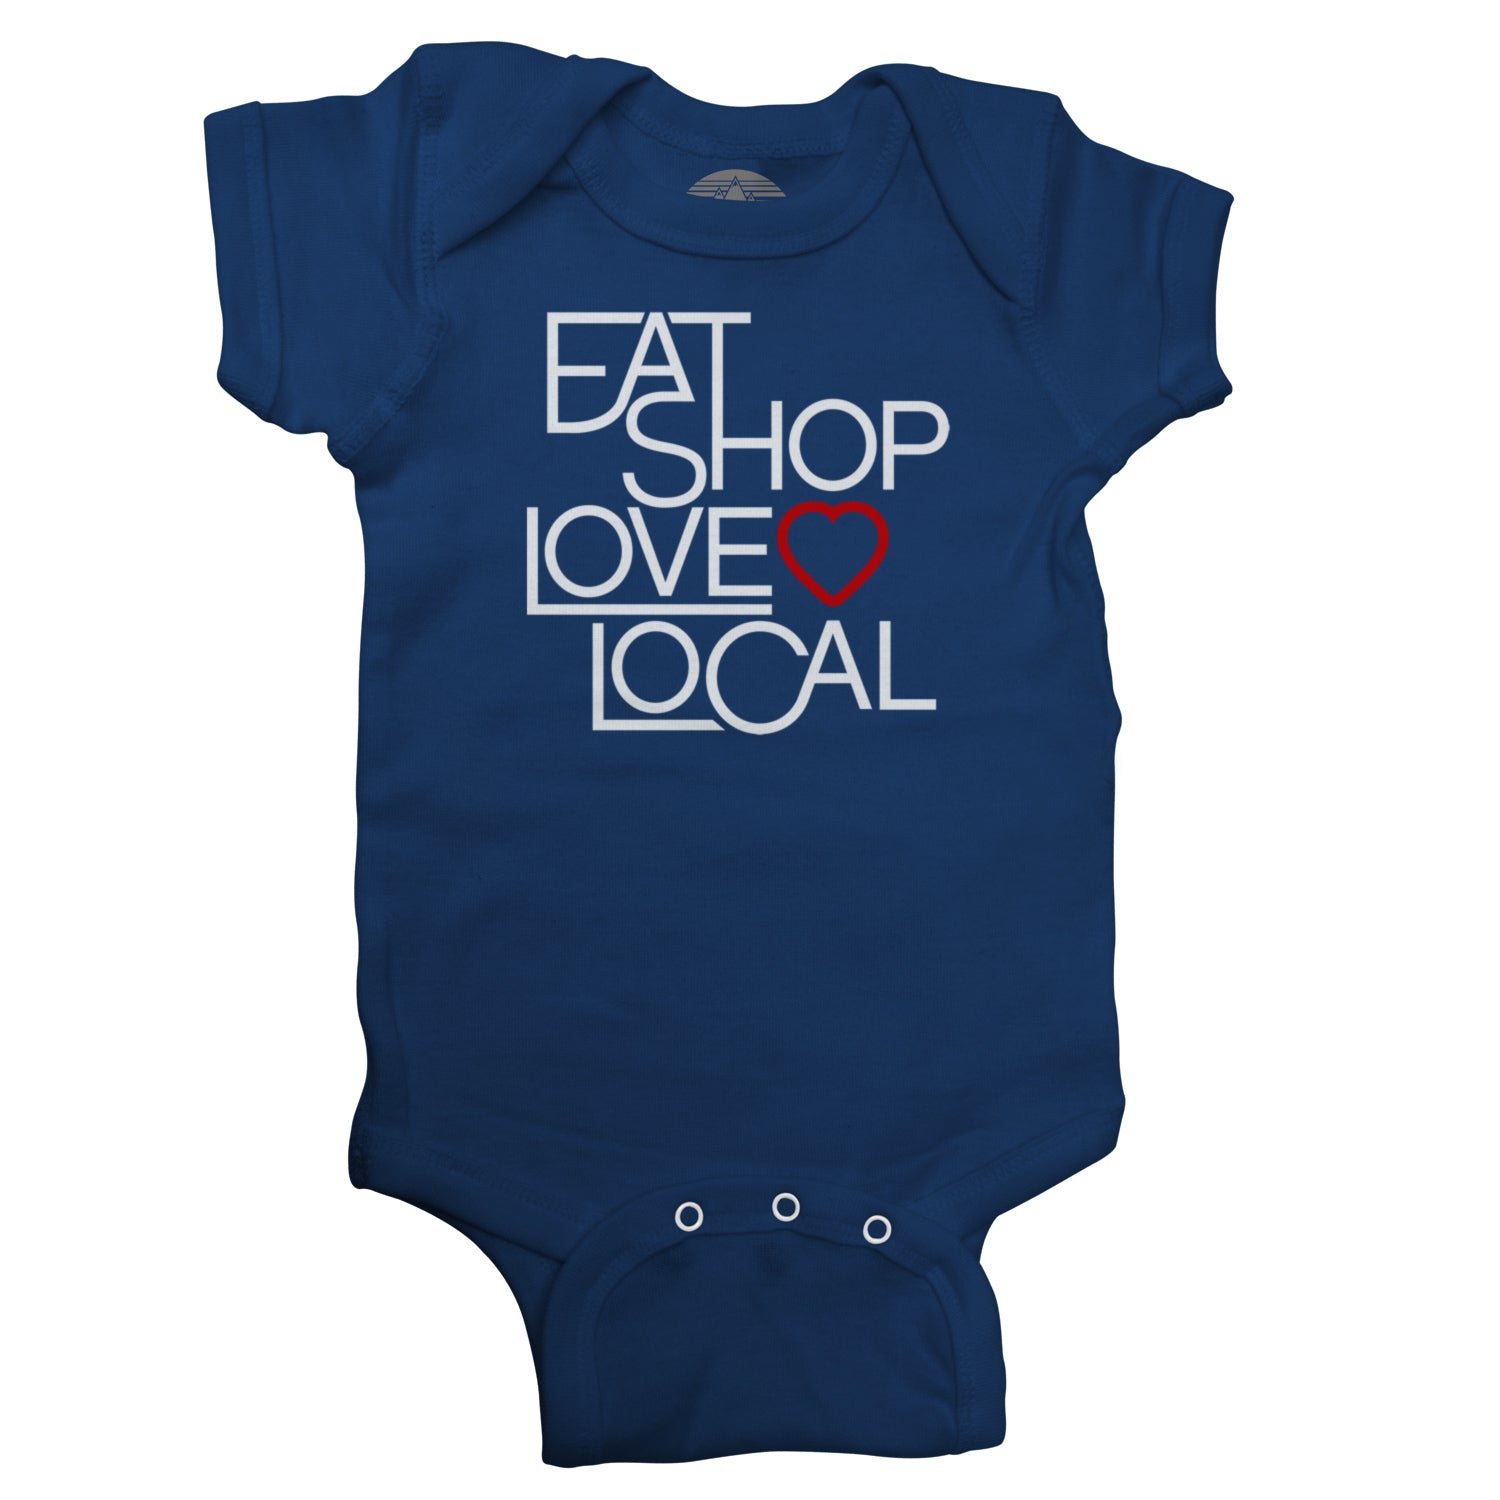 Love Shop Eat Local Infant Bodysuit - Unisex Fit